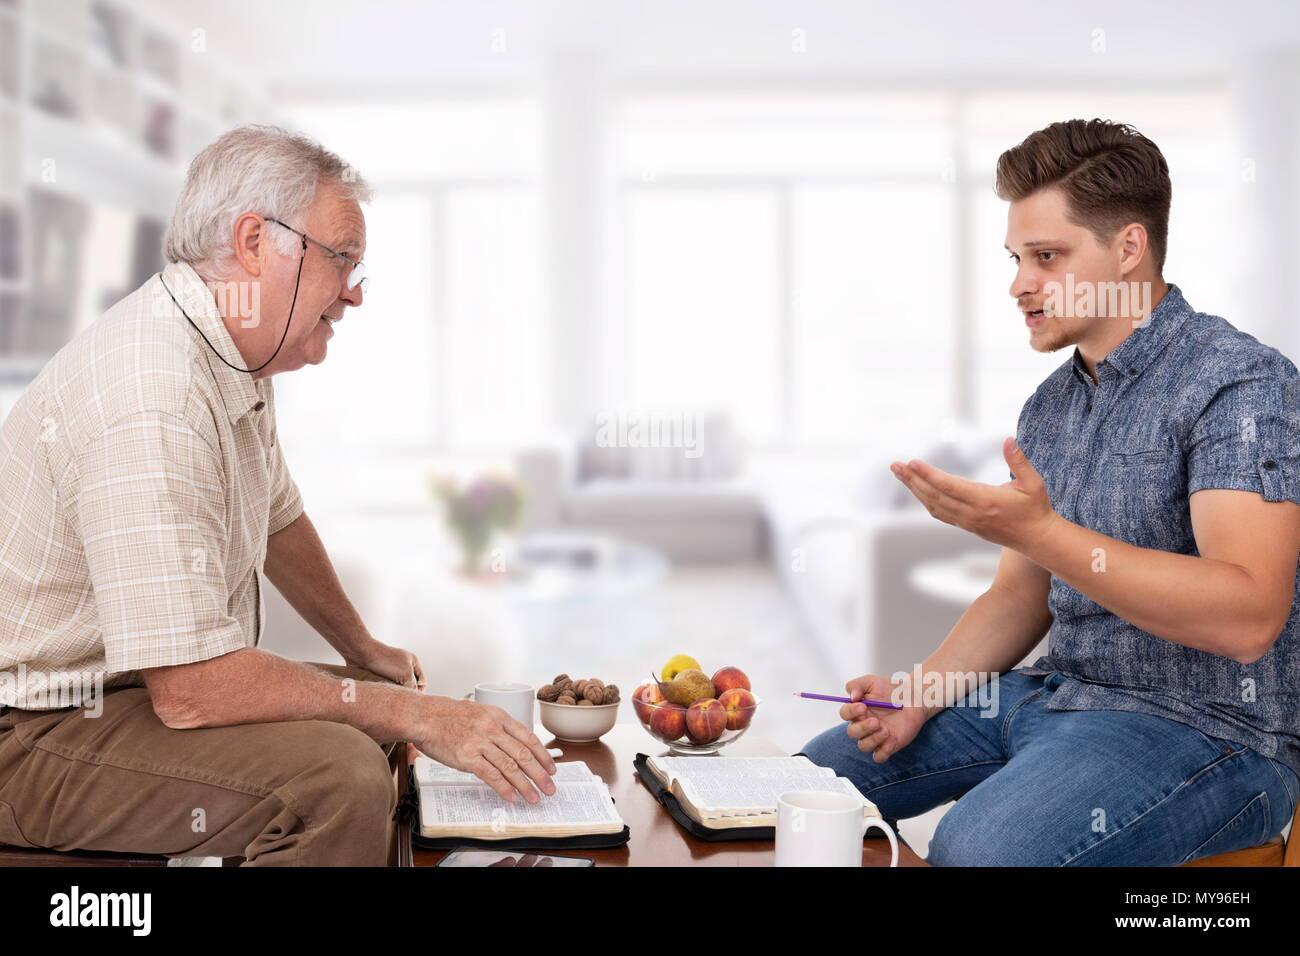 Church servant counselor doing spiritual counseling to a young man studying the Bible - Stock Image